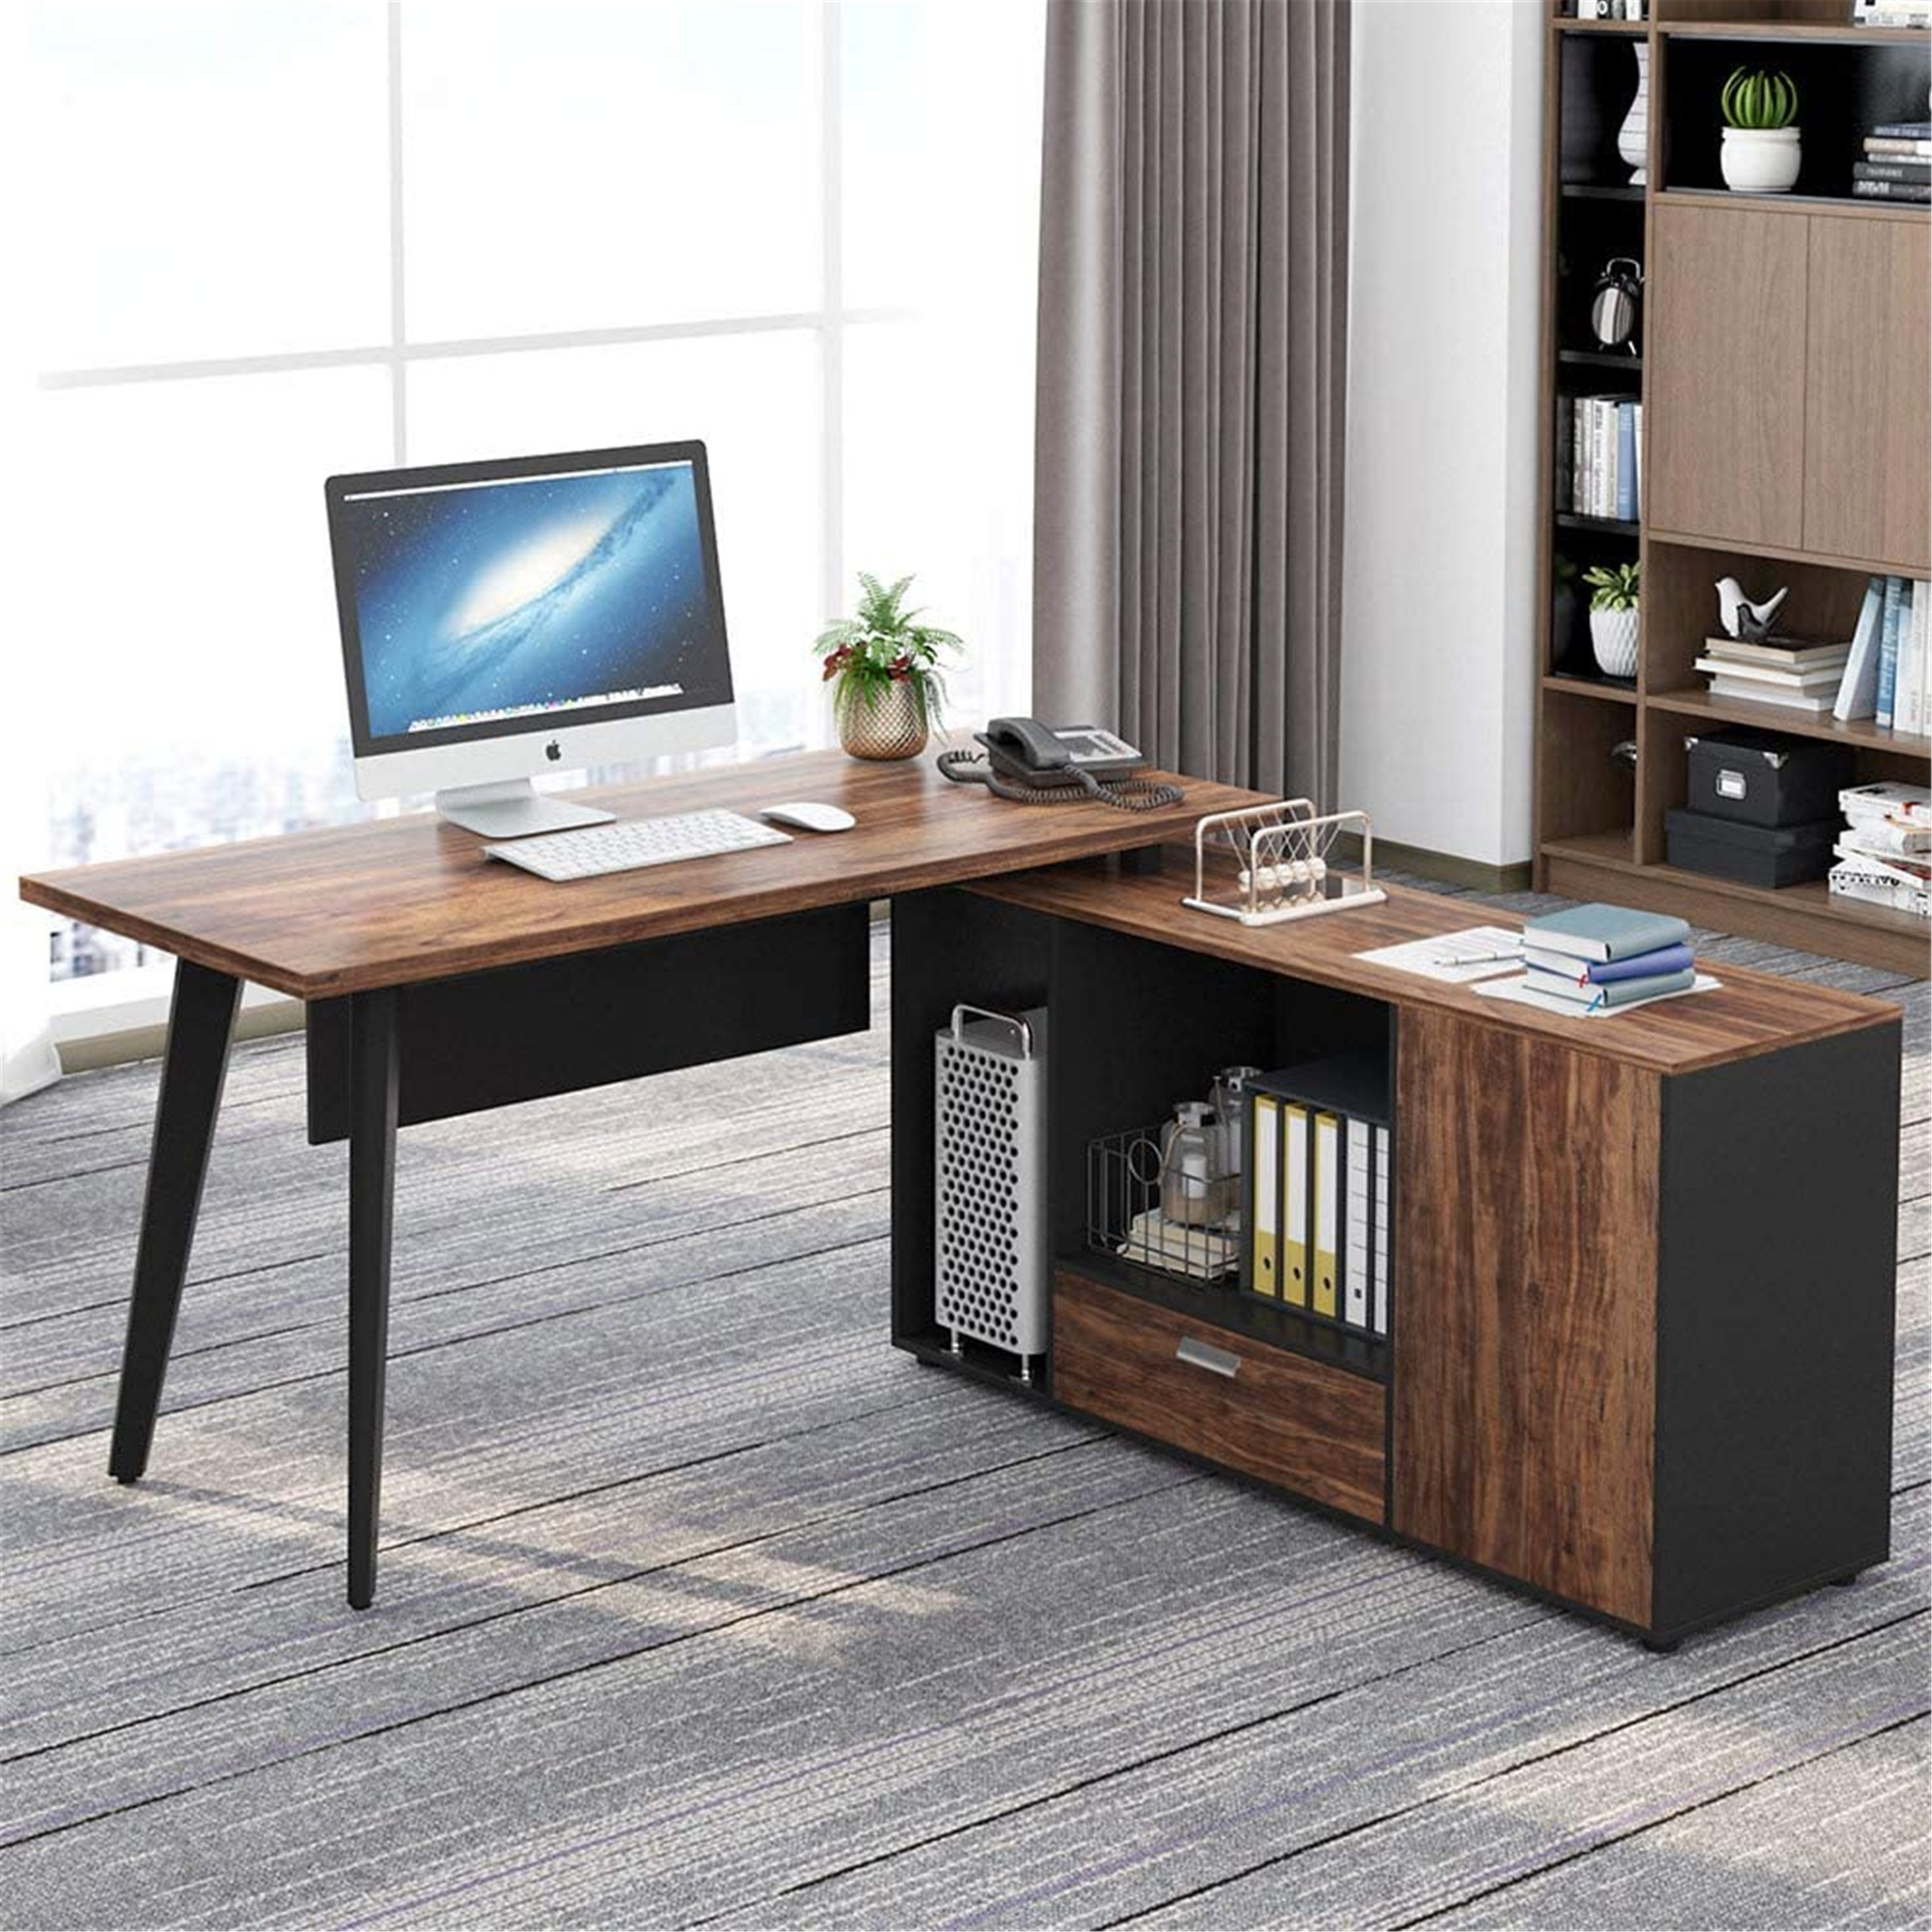 L Shaped Desk Executive Office Desk With File Cabinet Black Brown Overstock 31746426